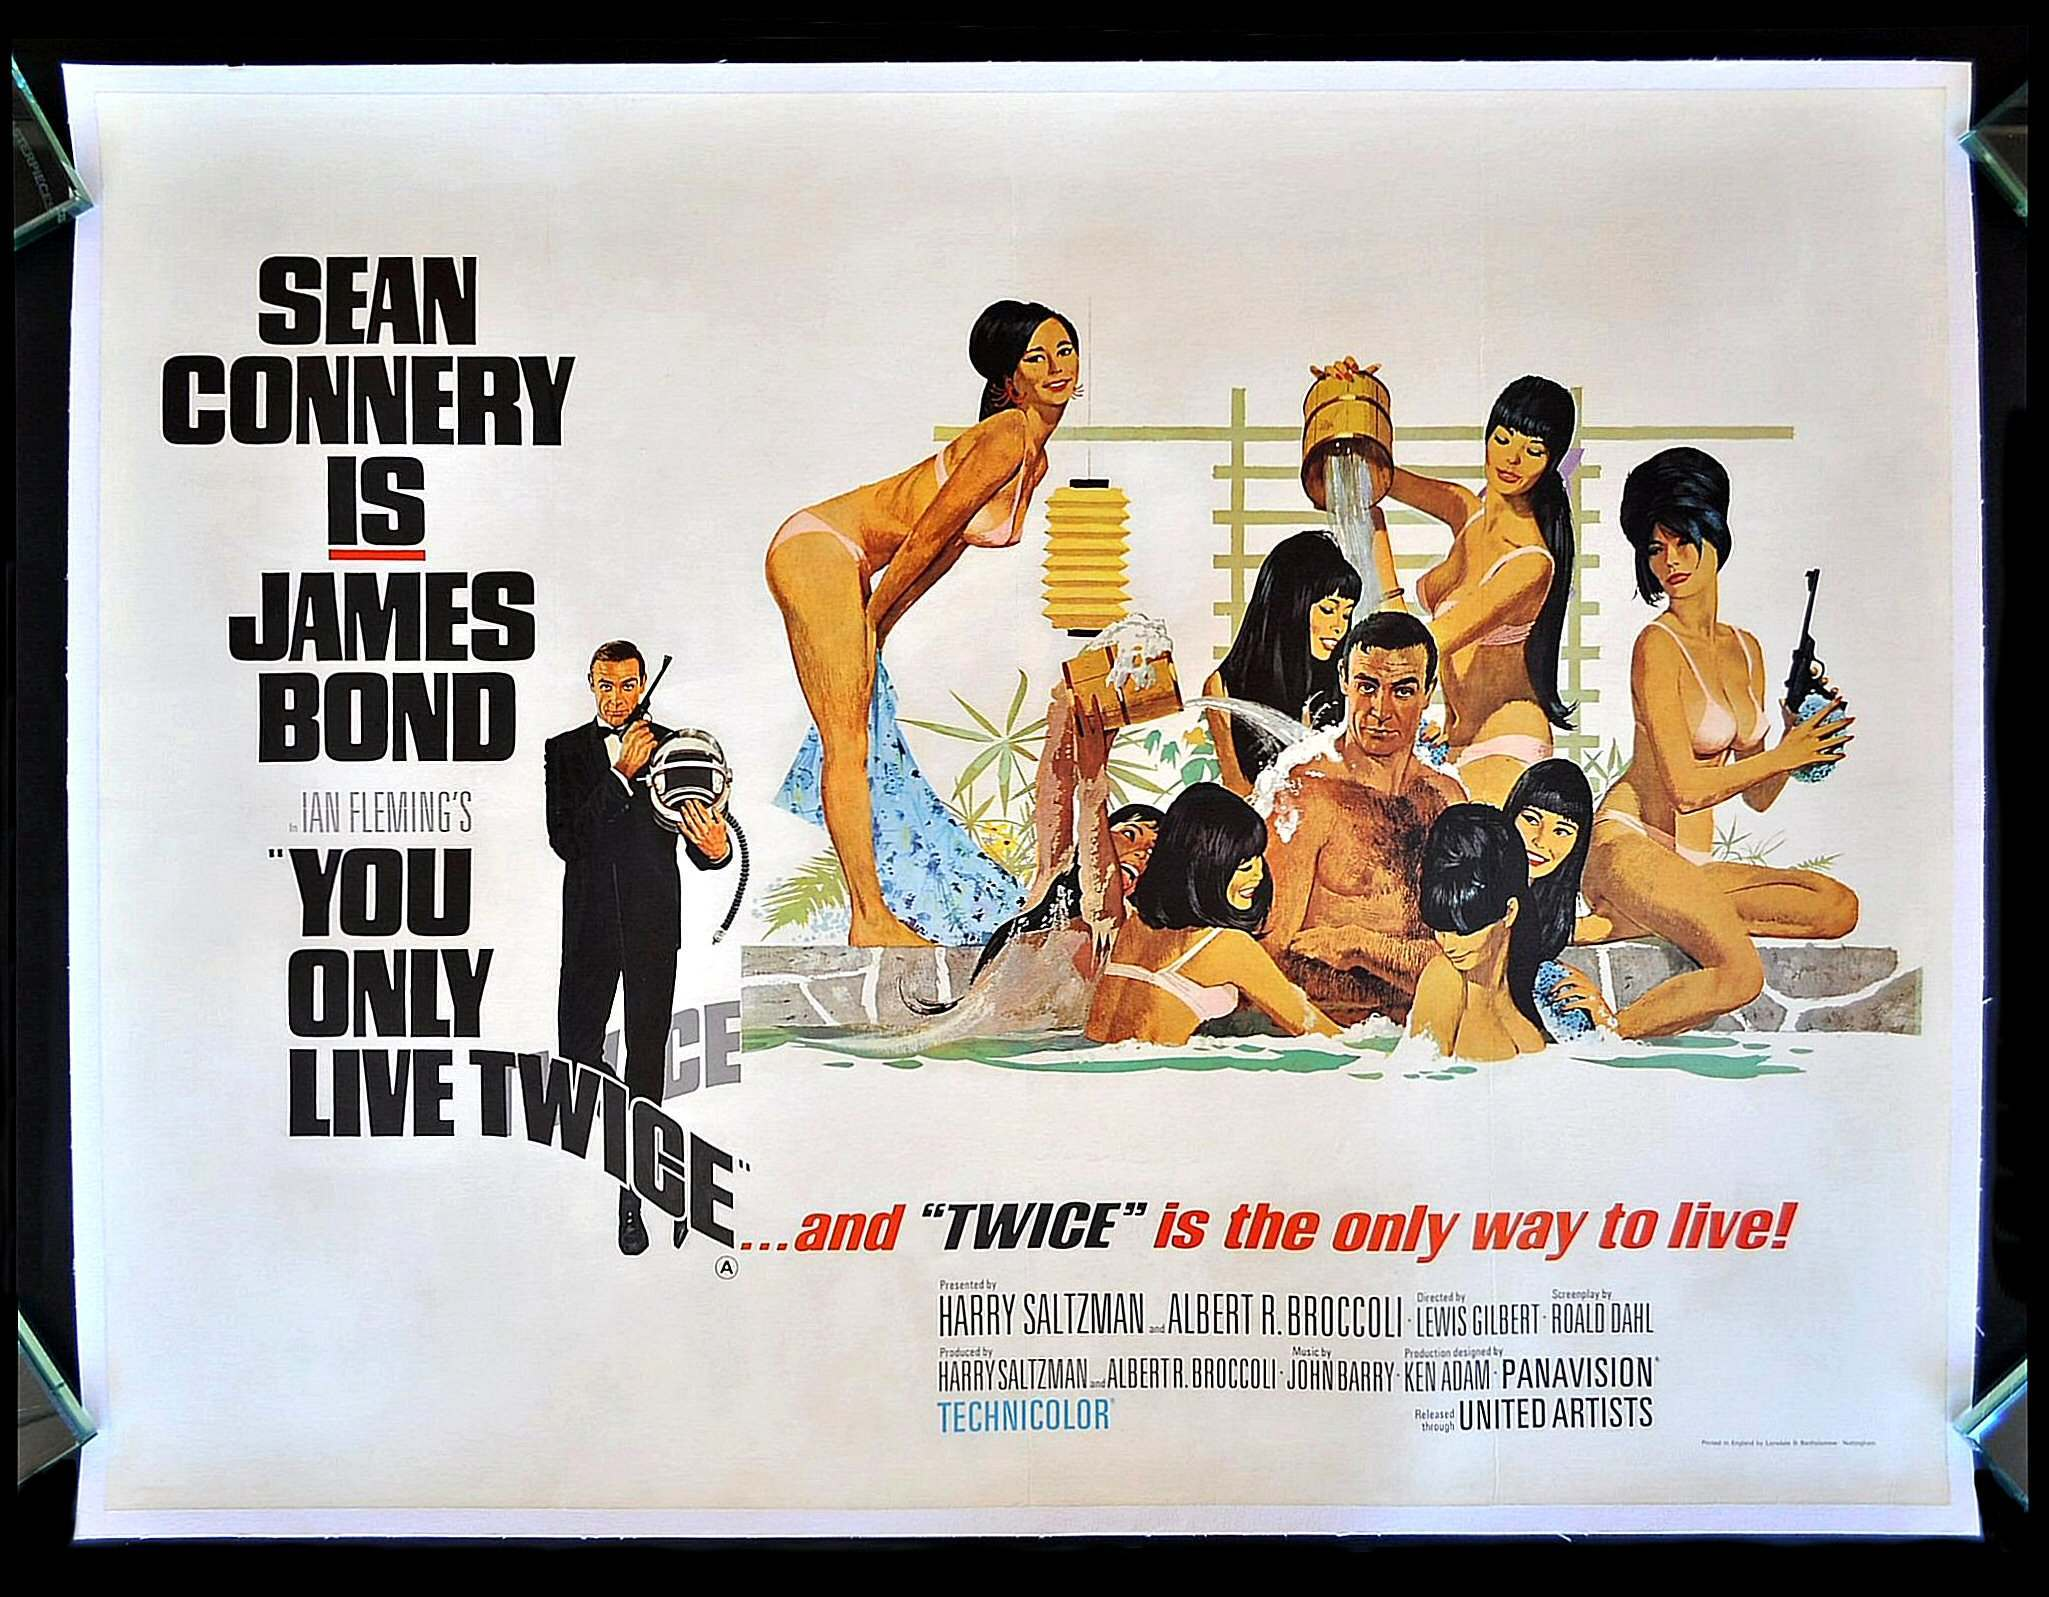 You Only Live Twice Bond bathing with lovelies poster